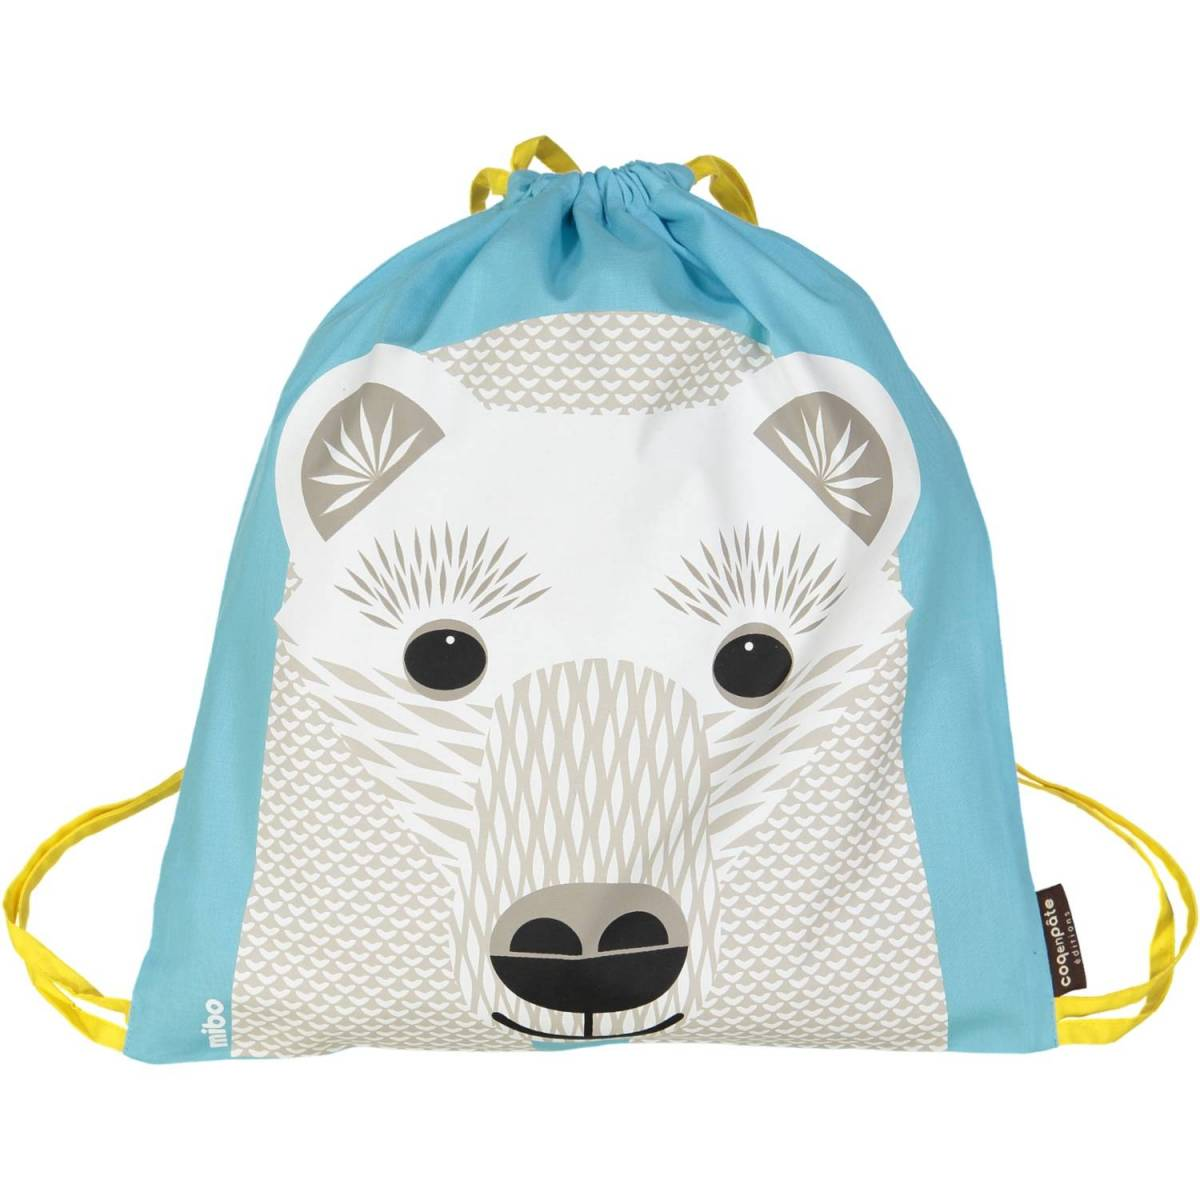 Polar bear activity bag